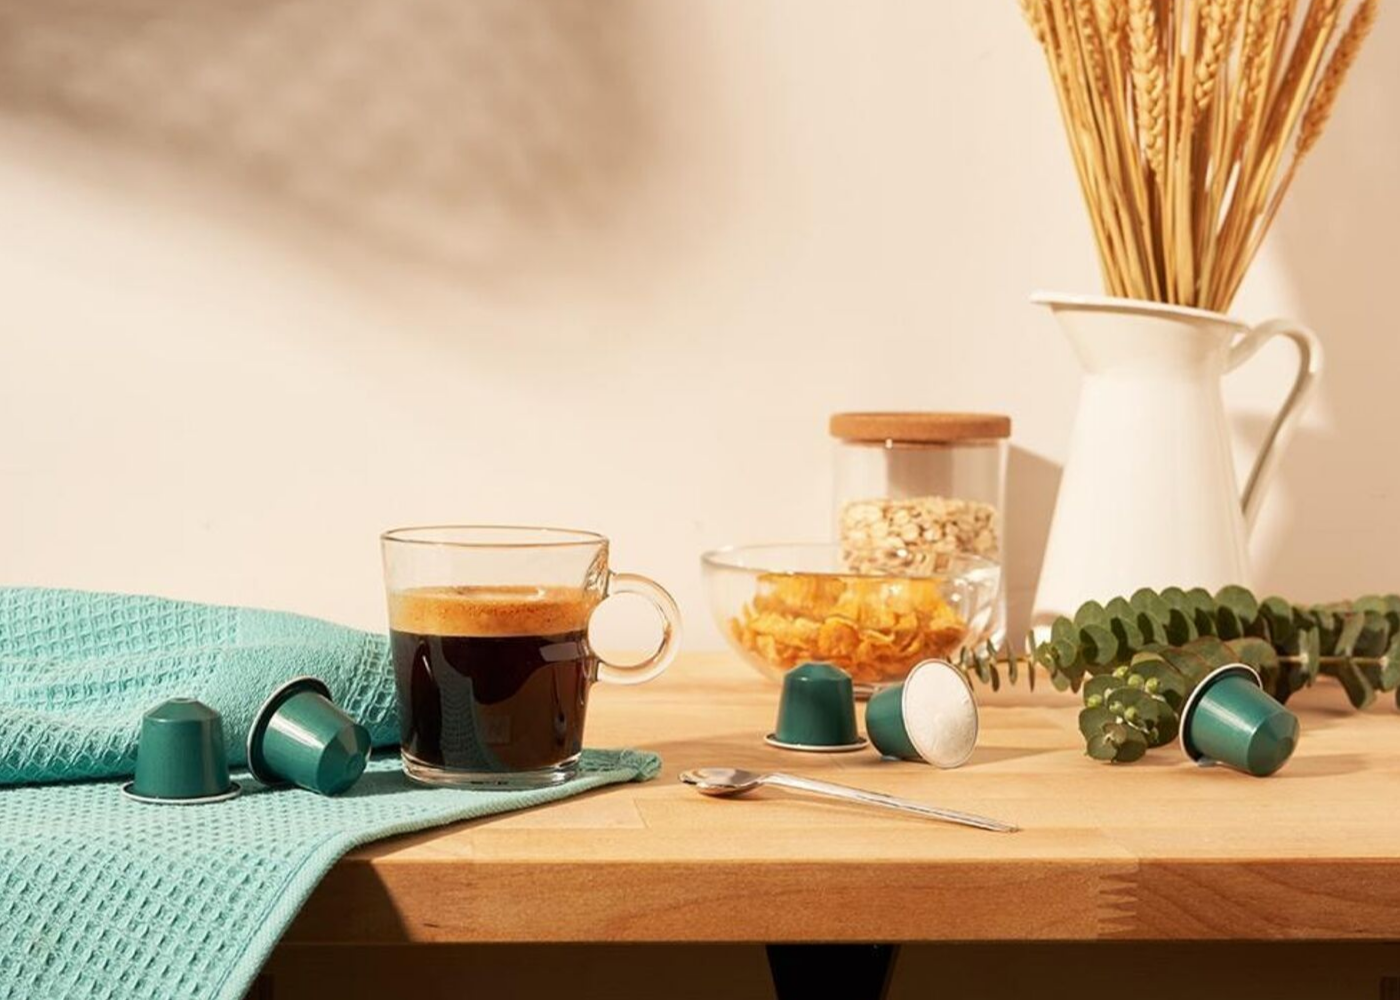 The full-bodied Fortissio Lungo coffee has notes of cereal and malt. Photography: Nespresso